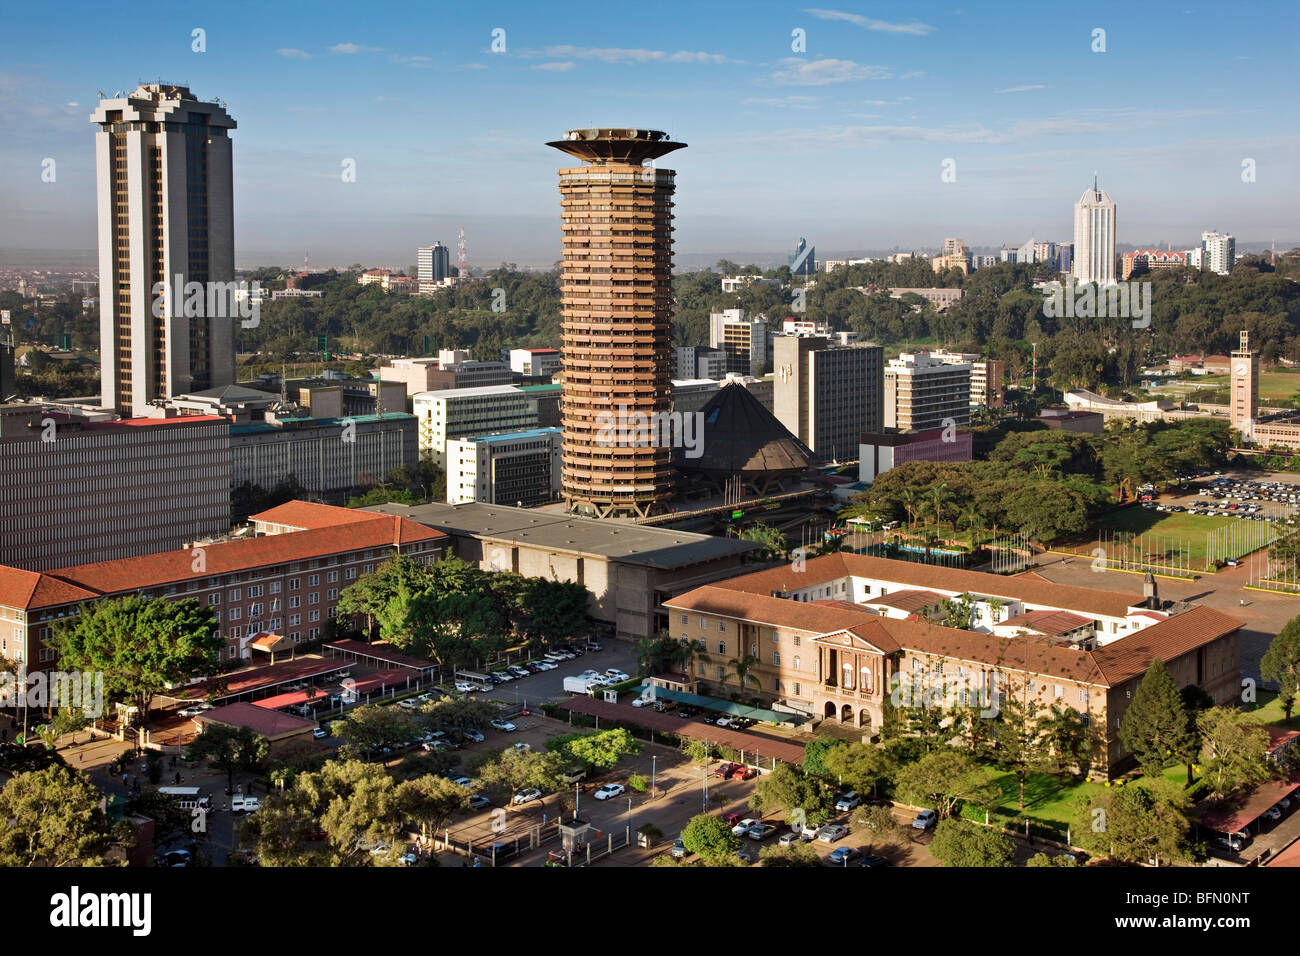 Kenya, Nairobi. Nairobi in early morning sunlight with the circular tower of the Kenyatta Conference Centre in the - Stock Image